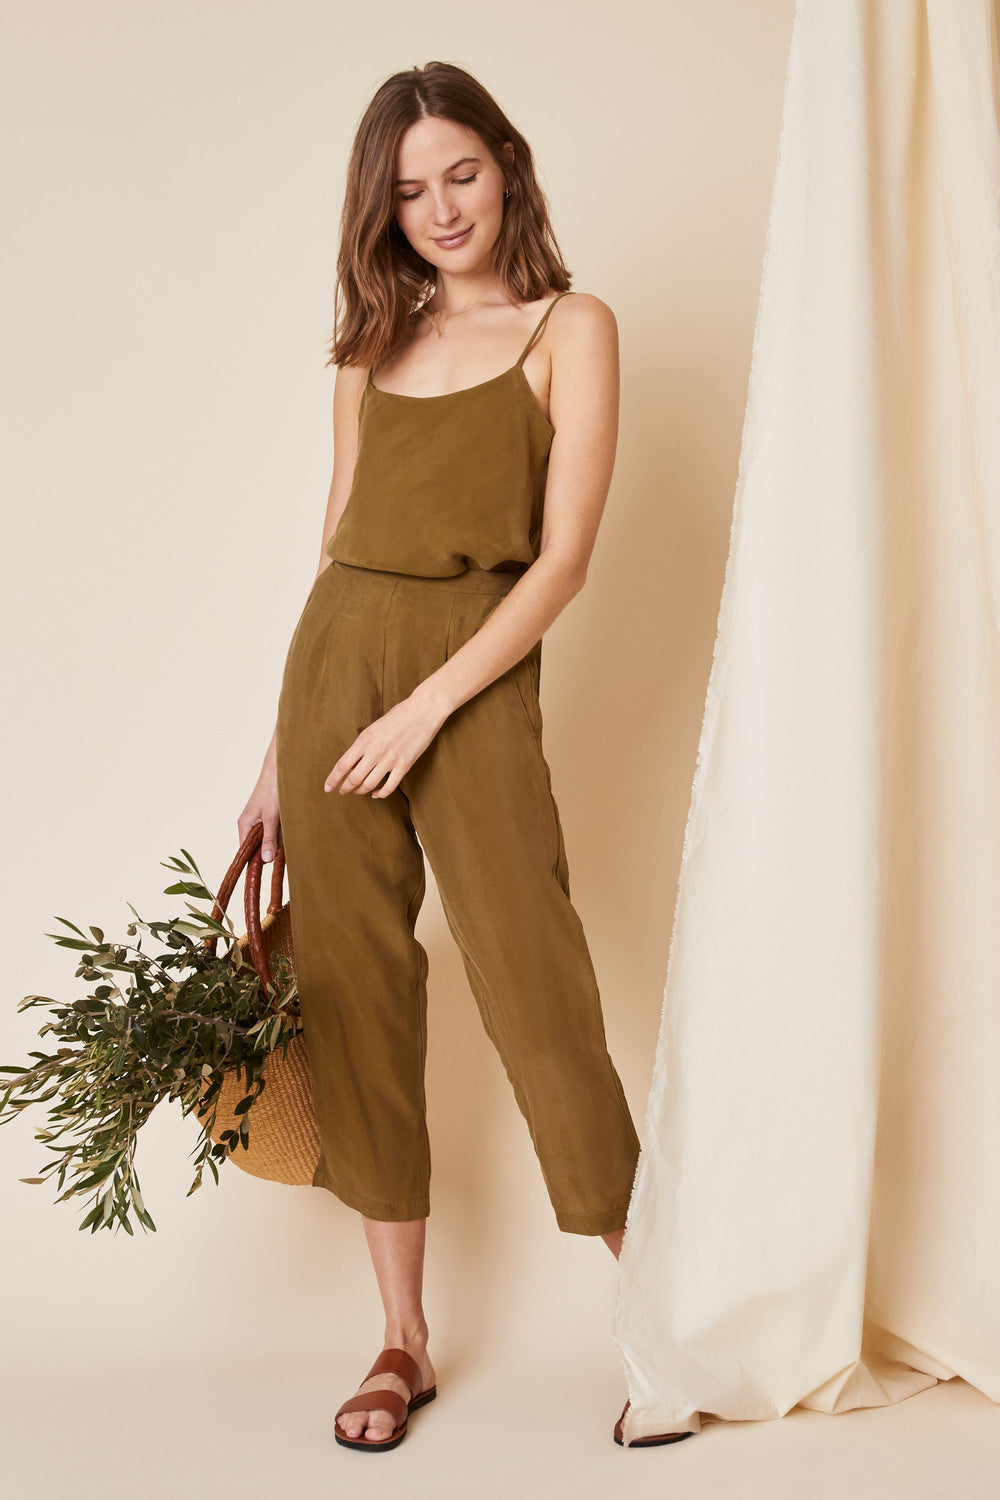 Rowen Pant in Olive - Whimsy & Row